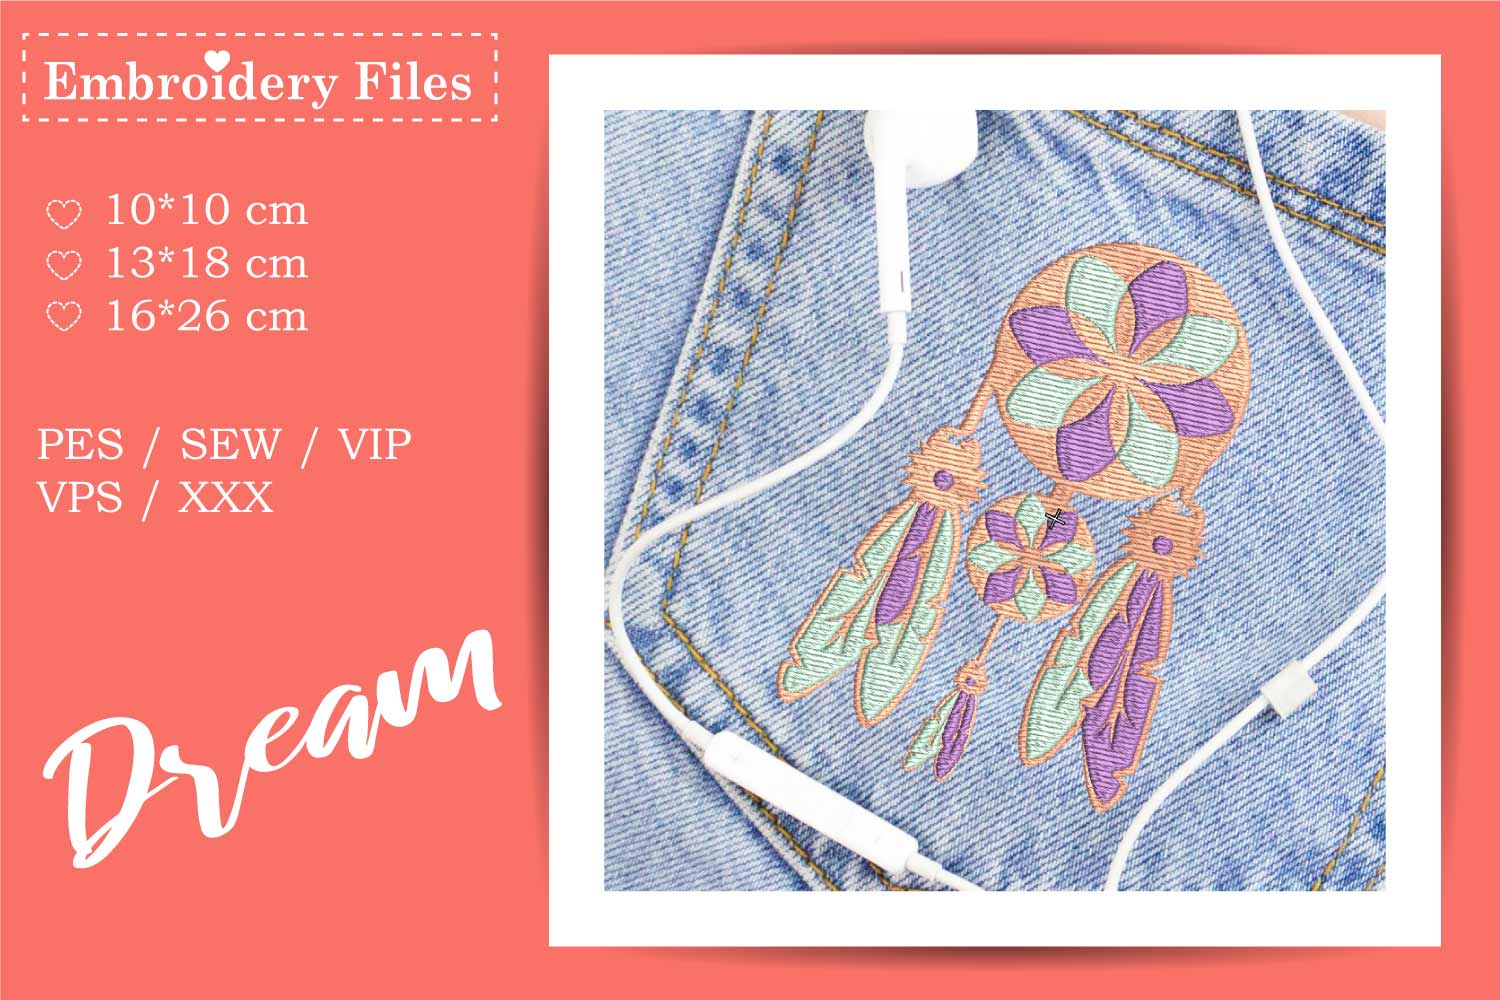 Wild West - Mini Bundle - Embroidery Files for Beginners example image 7